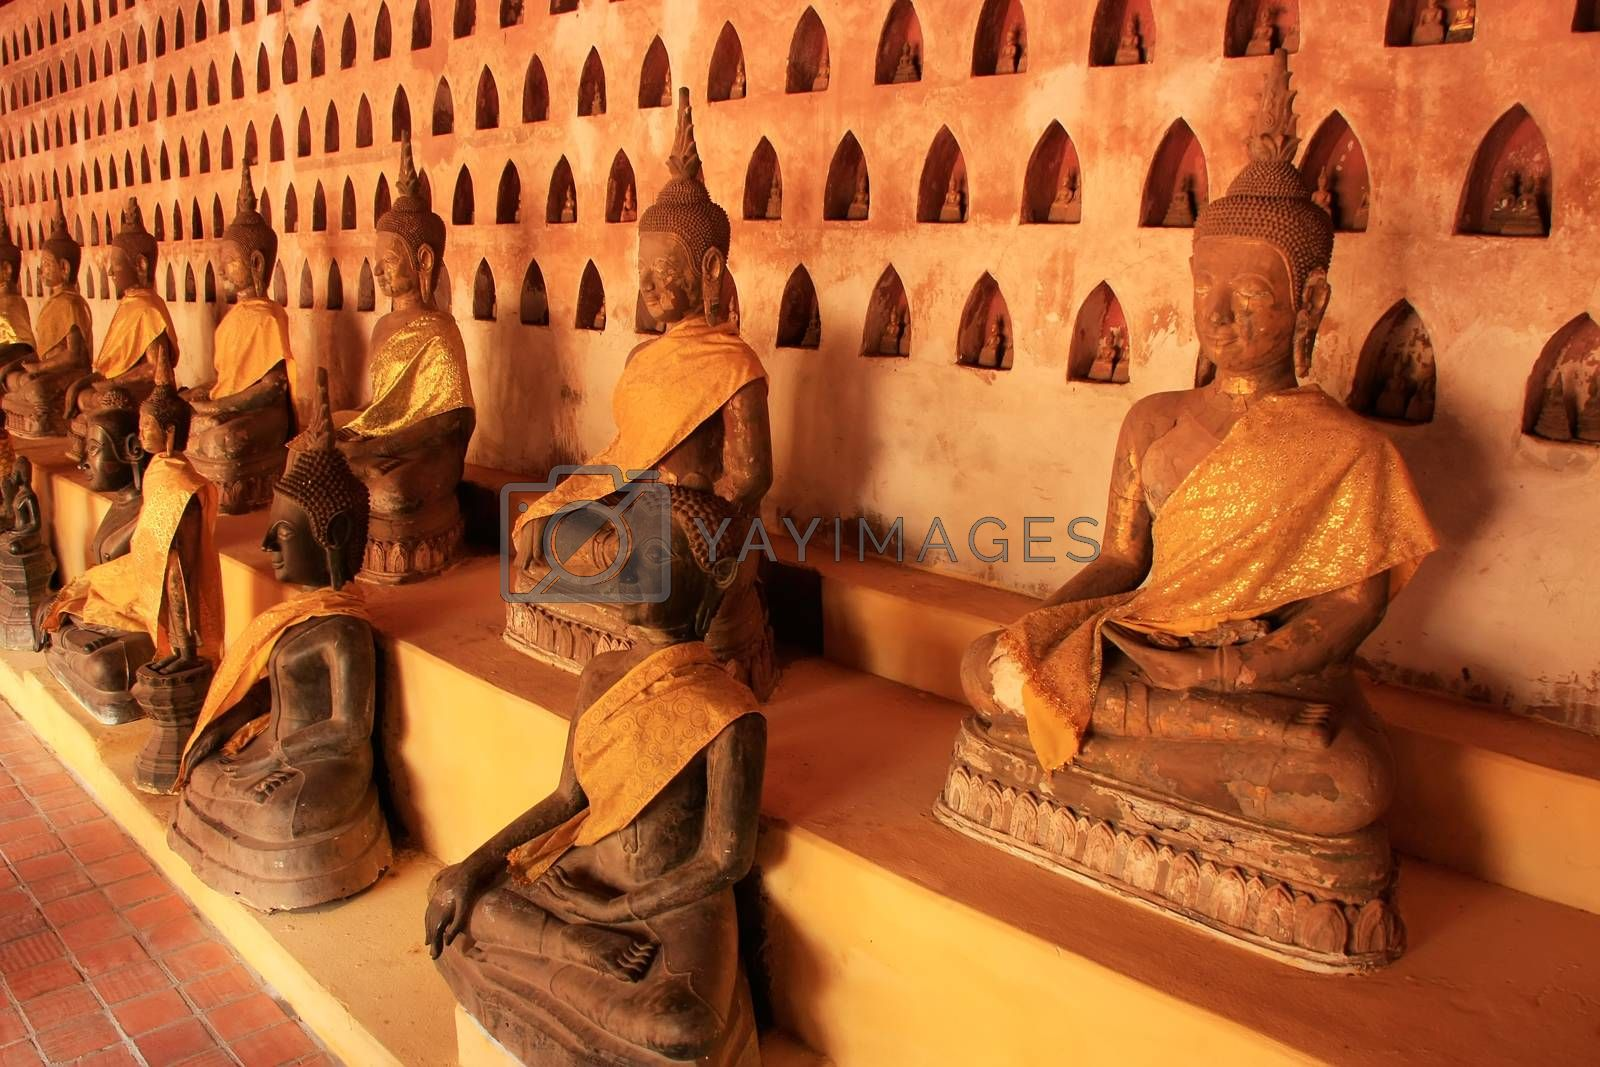 Royalty free image of Buddha statues in Wat Si Saket, Vientiane, Laos by donya_nedomam